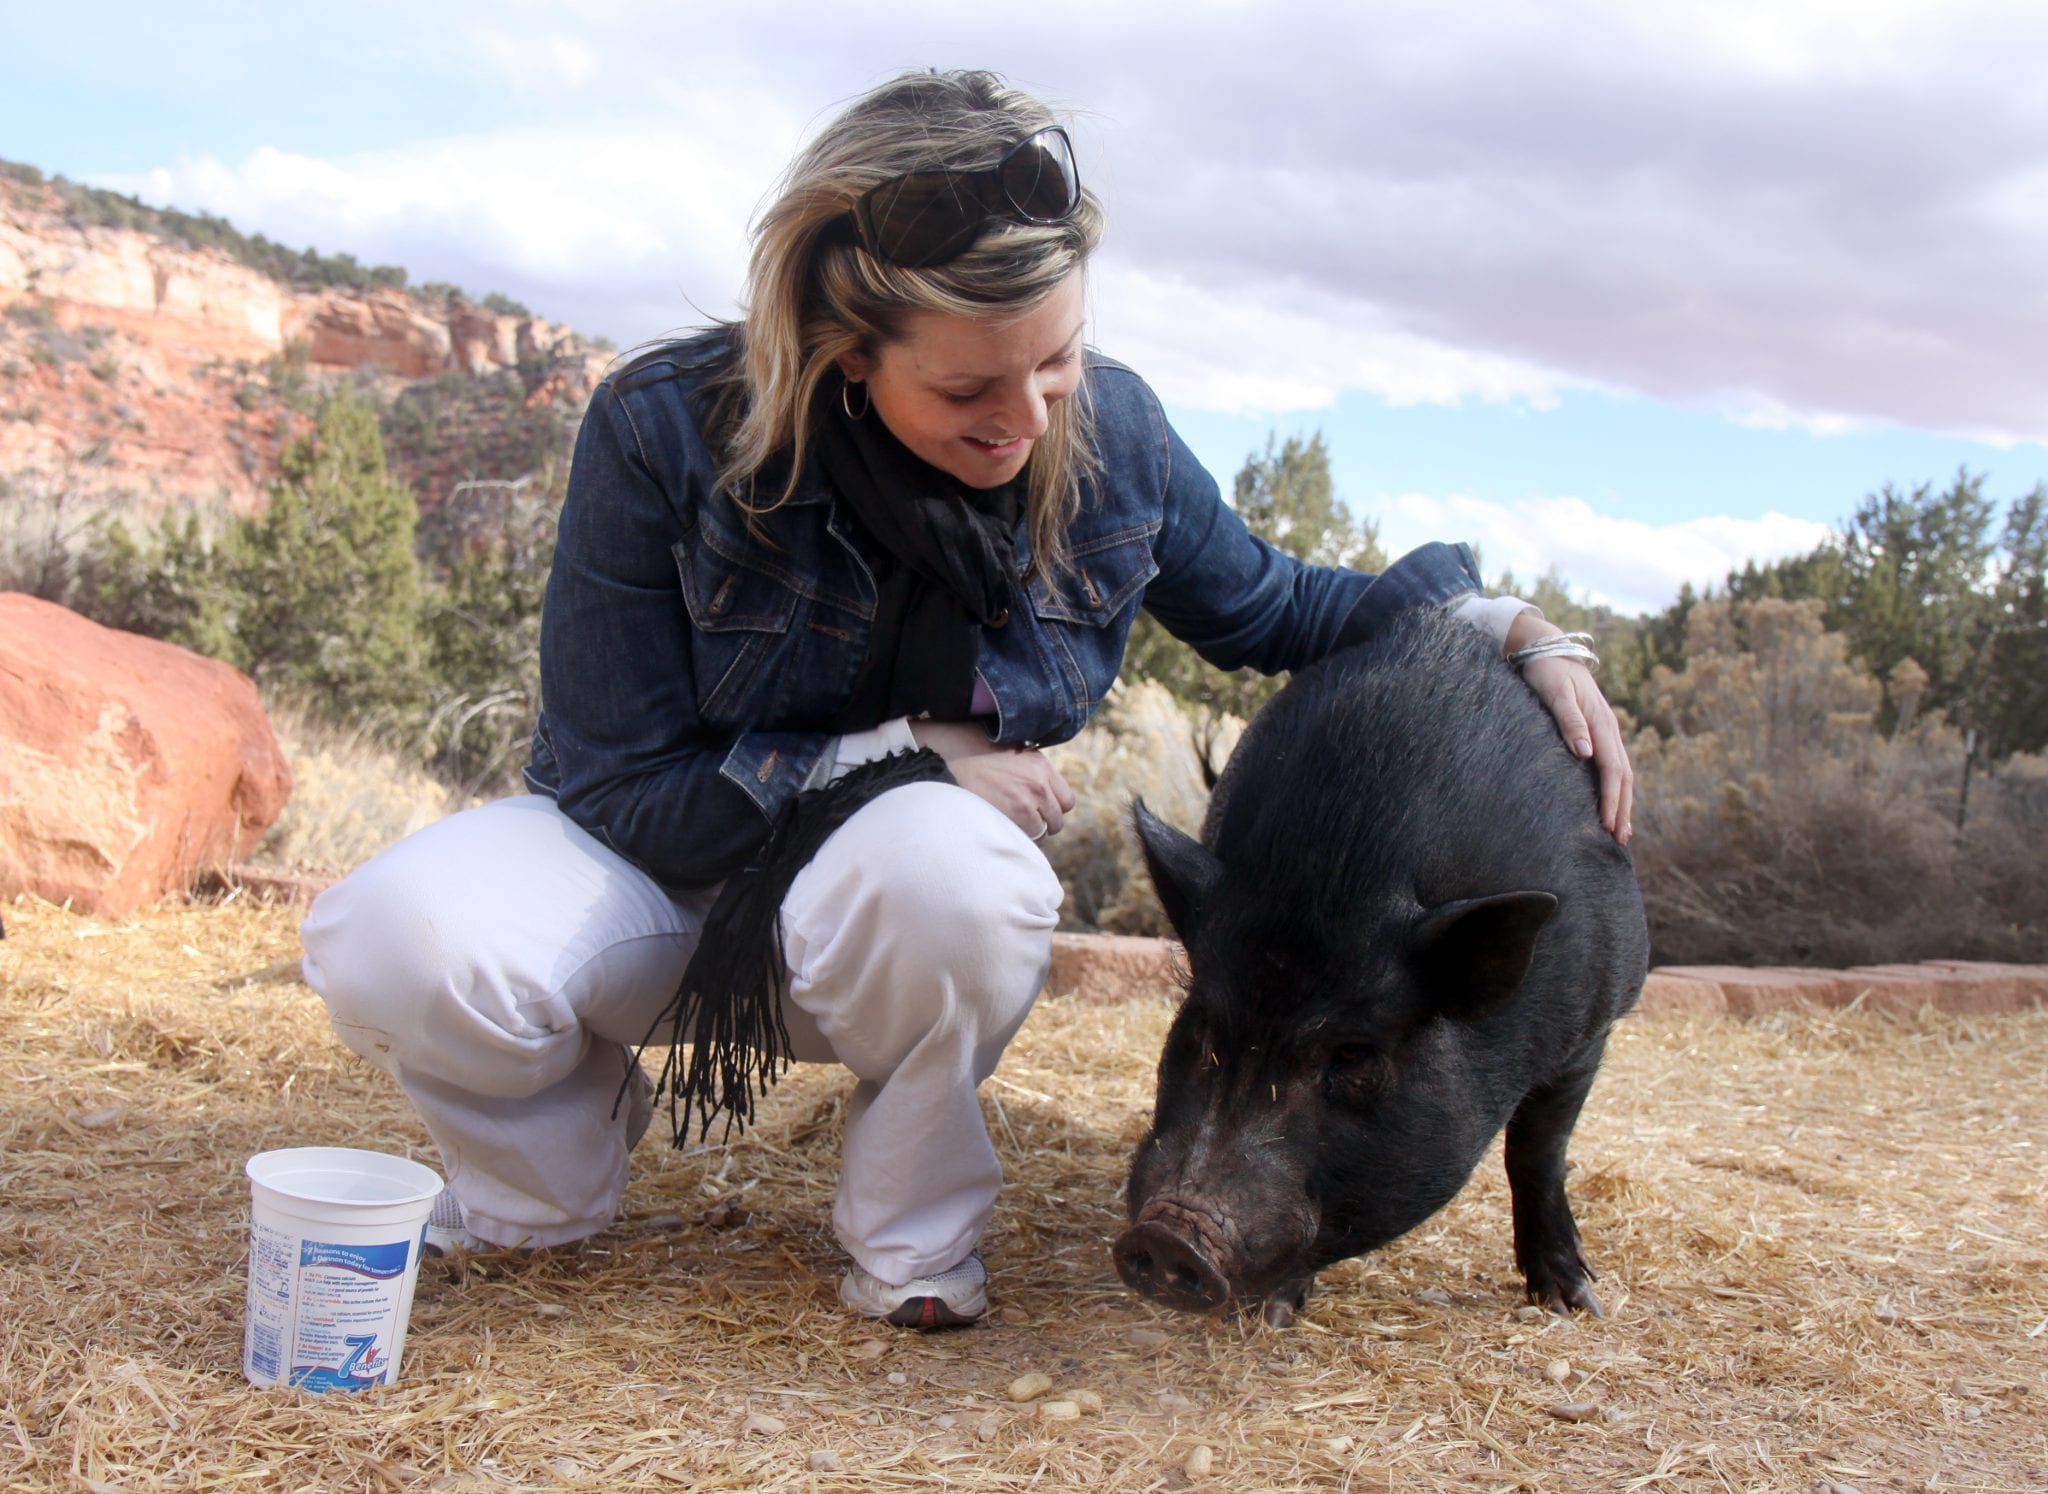 Me and a pal, Best Friends Magazine, Best Friends Animal Society: Kanab, Utah, 2009.